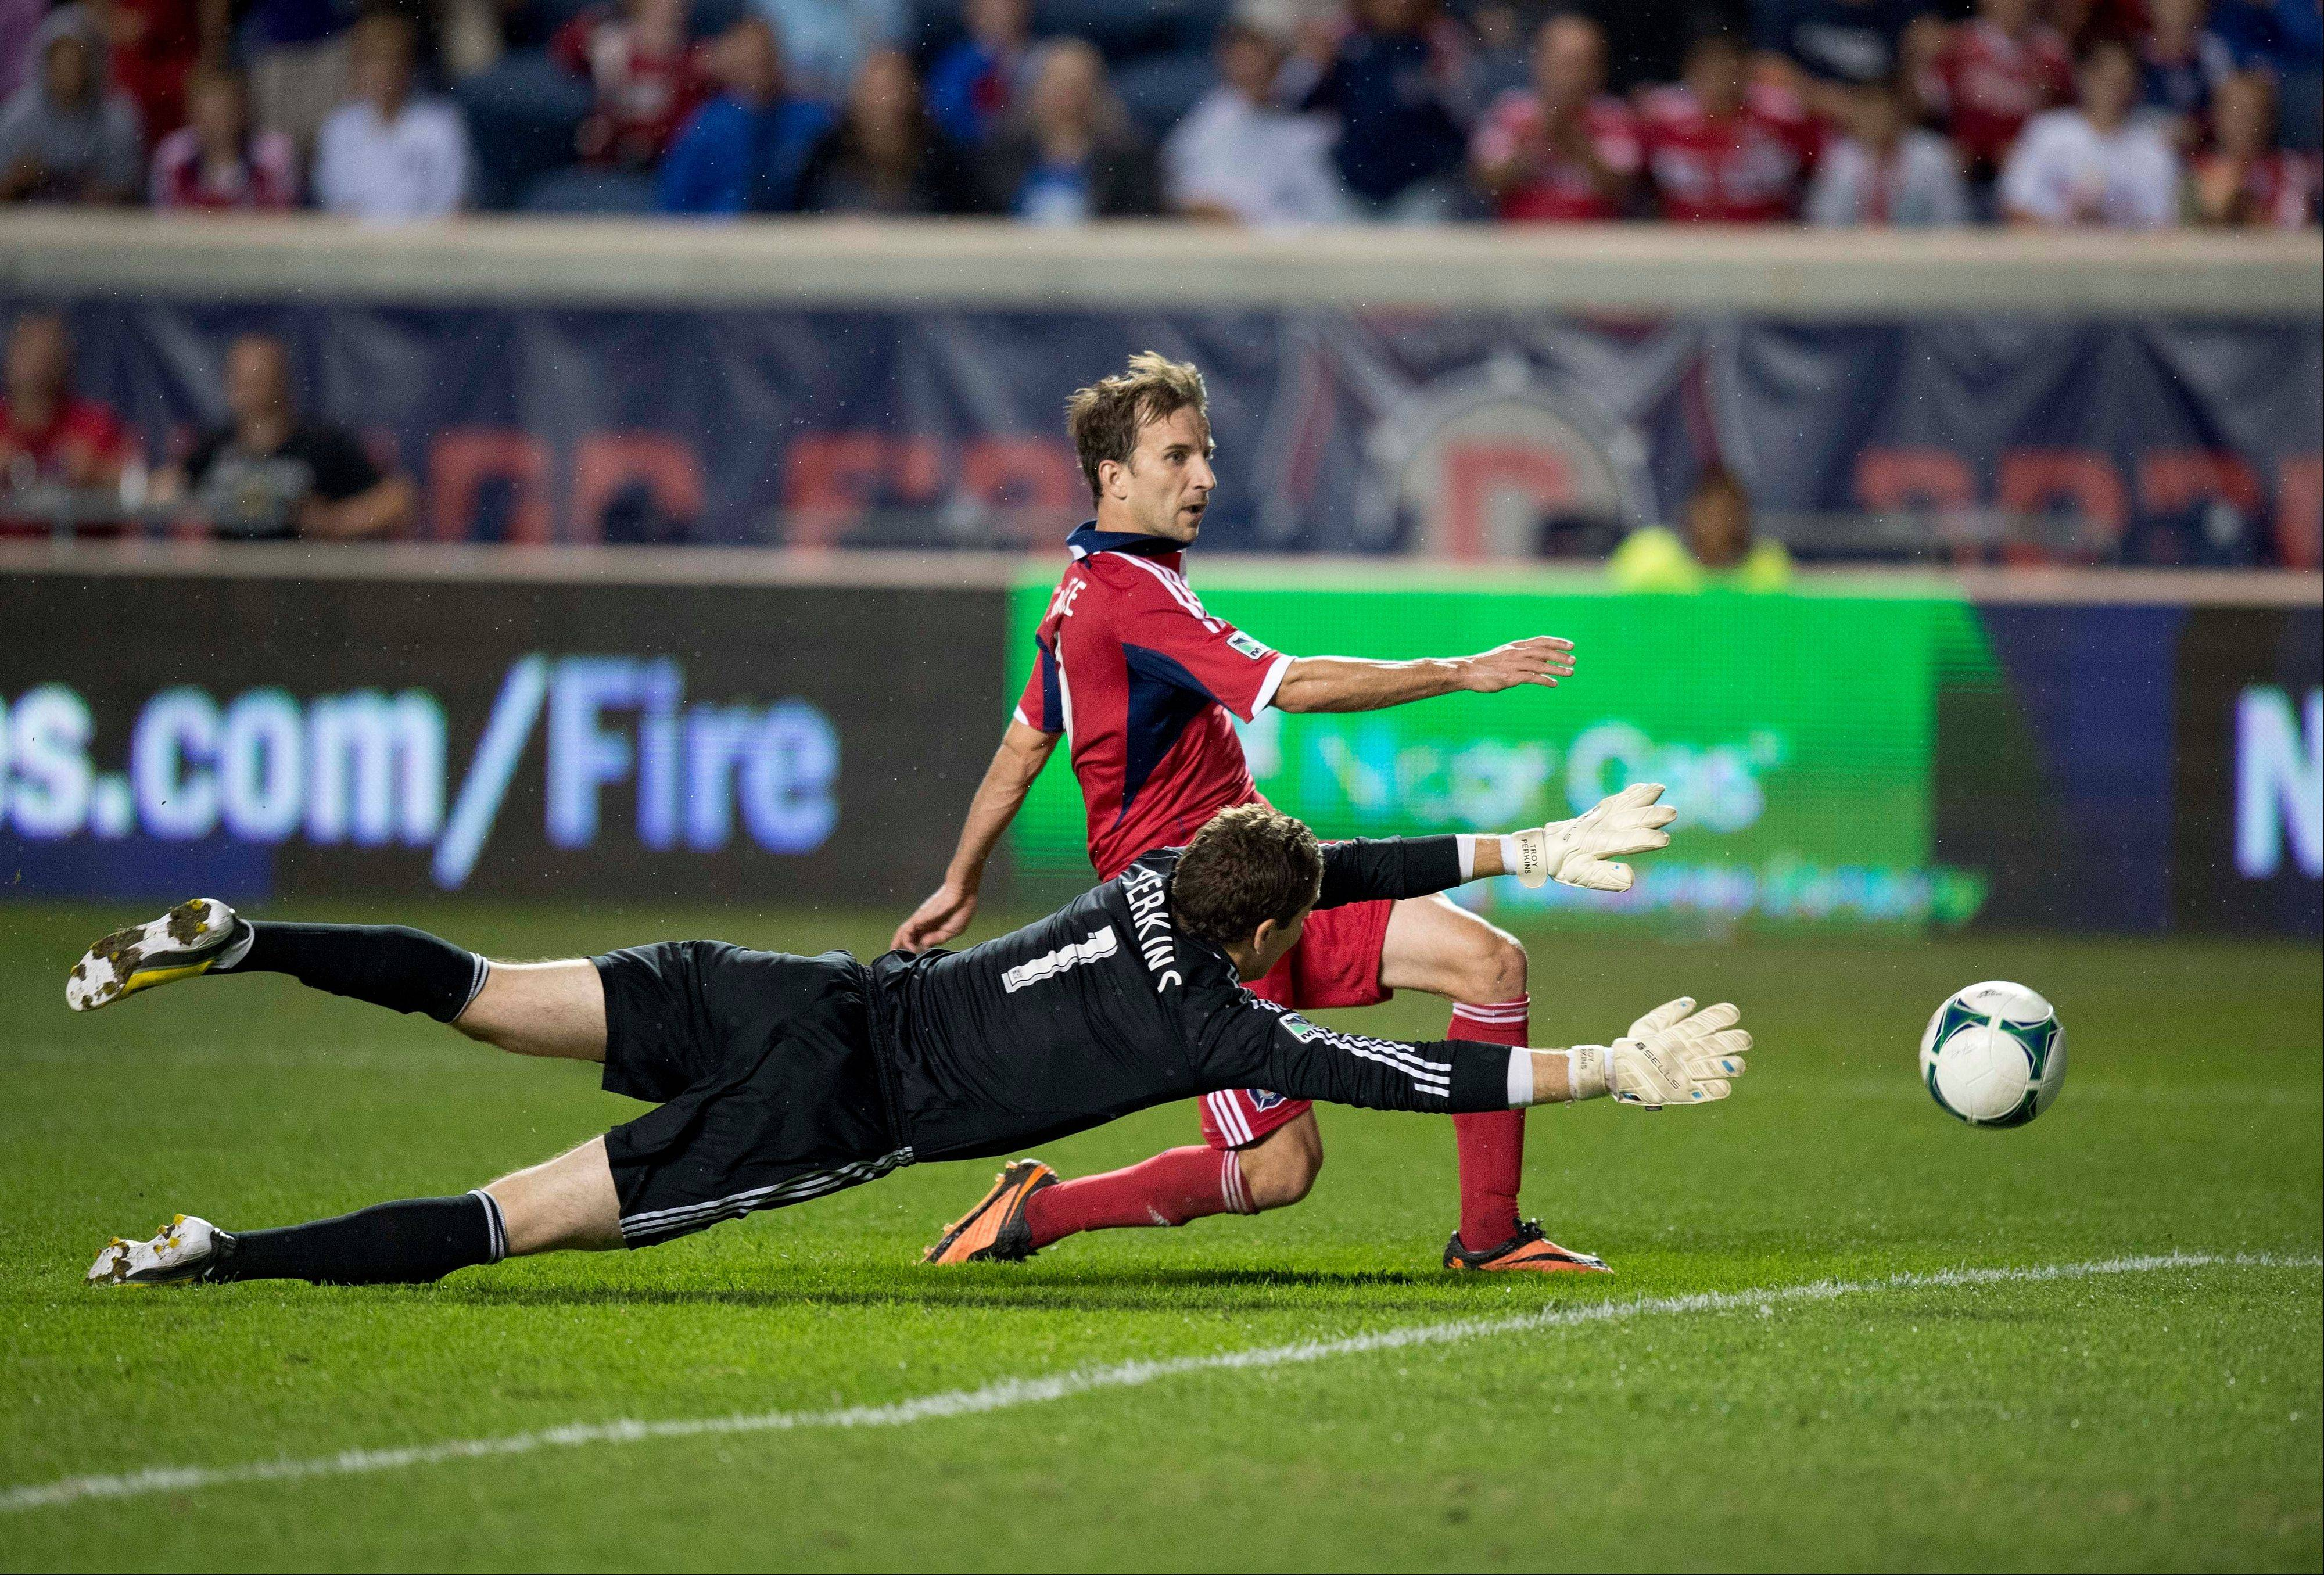 Chicago Fire forward Mike Magee, left, scores past Montreal Impact goalkeeper Troy Perkins during the second half of an MLS soccer game, Saturday, Sept. 28, 2013 in Bridgeview, Ill. The Fire and Impact tied 2-2.